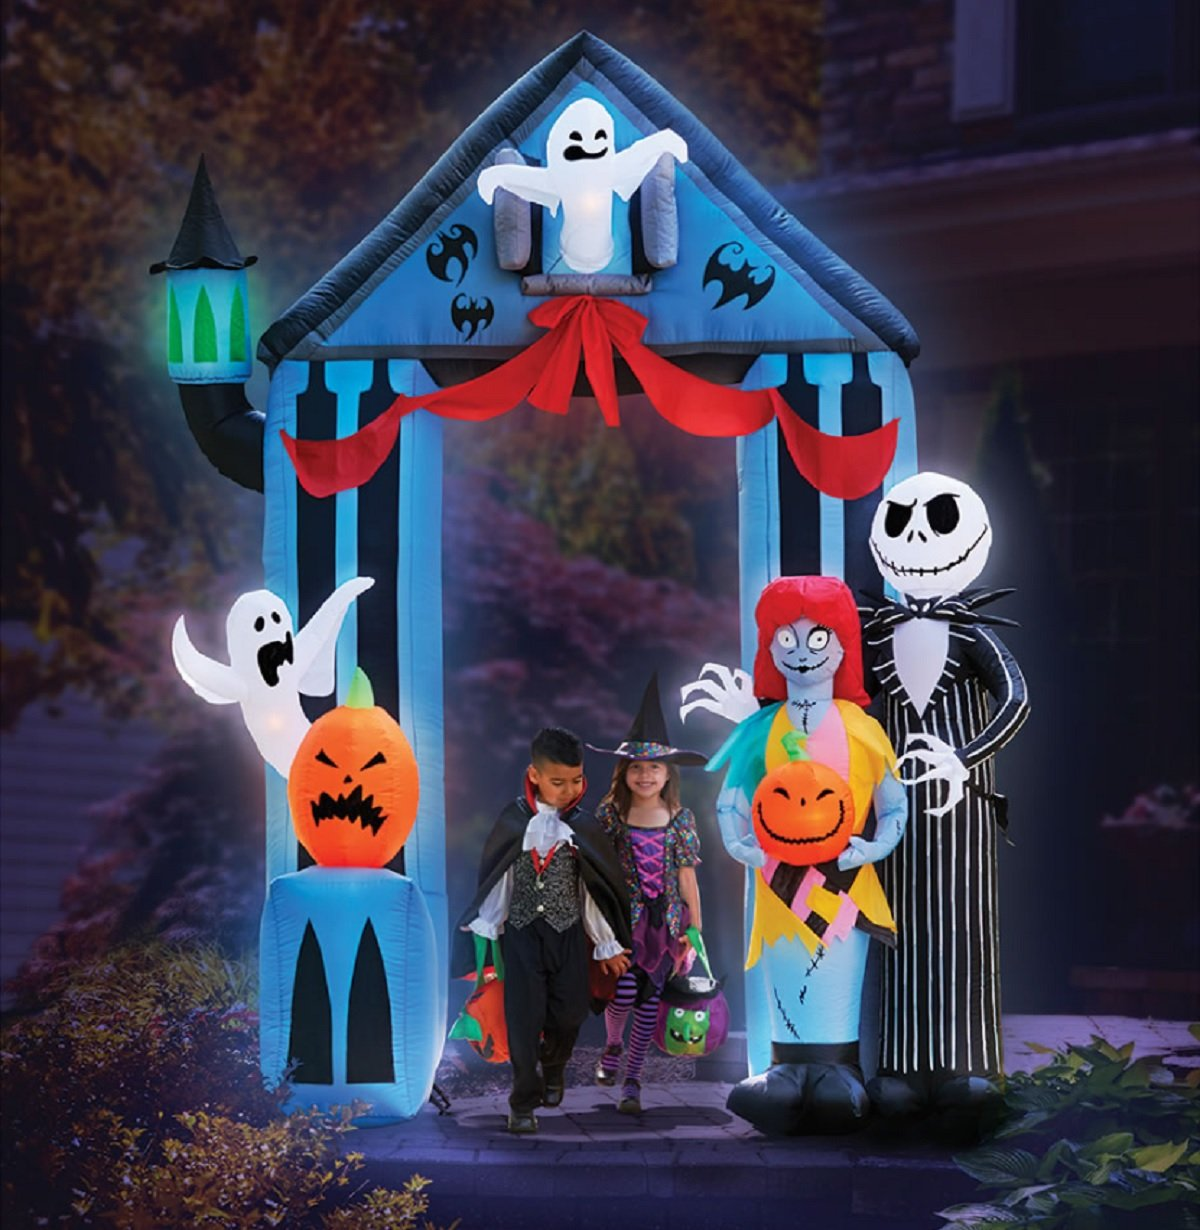 amazoncom halloween 9 nightmare before christmas archway with jack skellington sally claws airblown inflatable yard decor by gemmy patio - Inflatable Halloween Yard Decorations